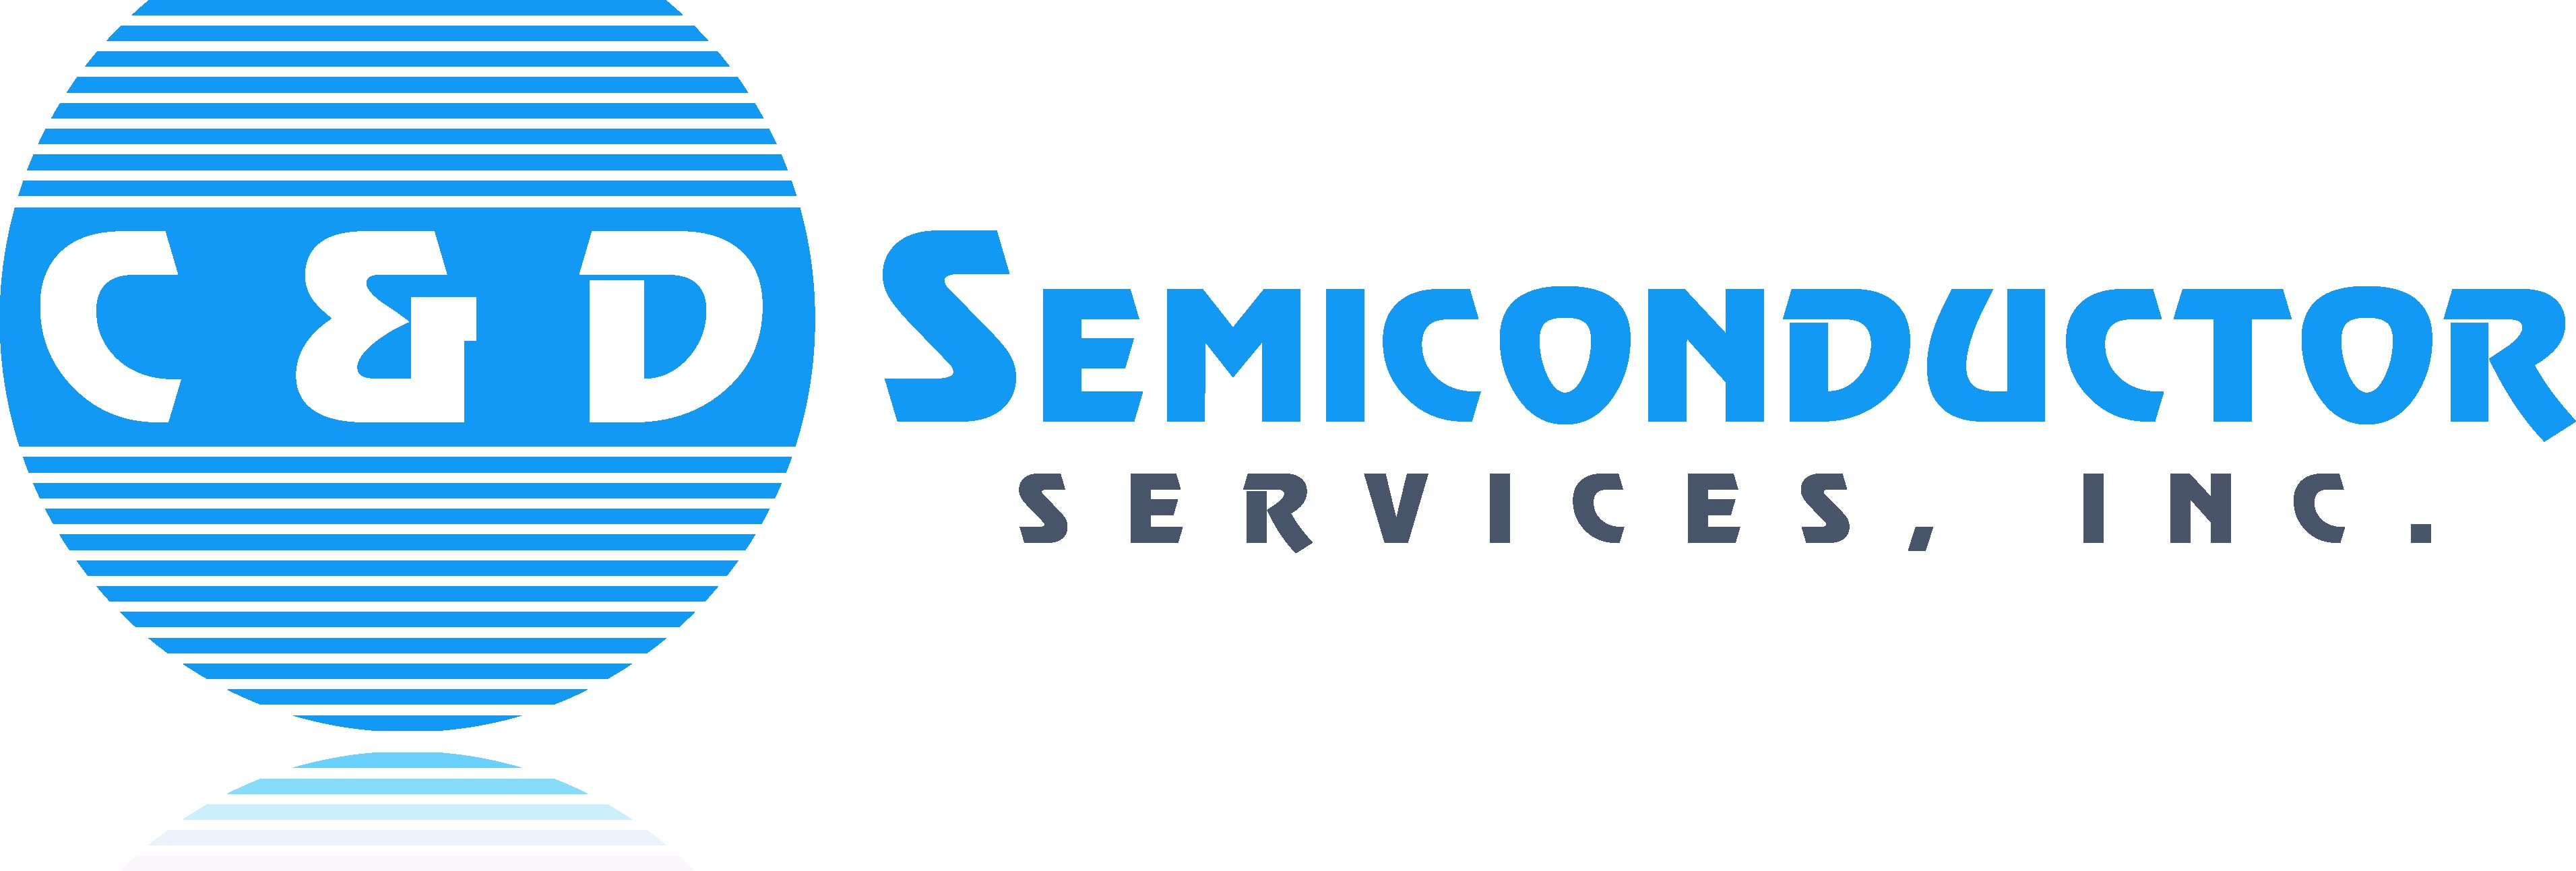 C&D Semiconductor